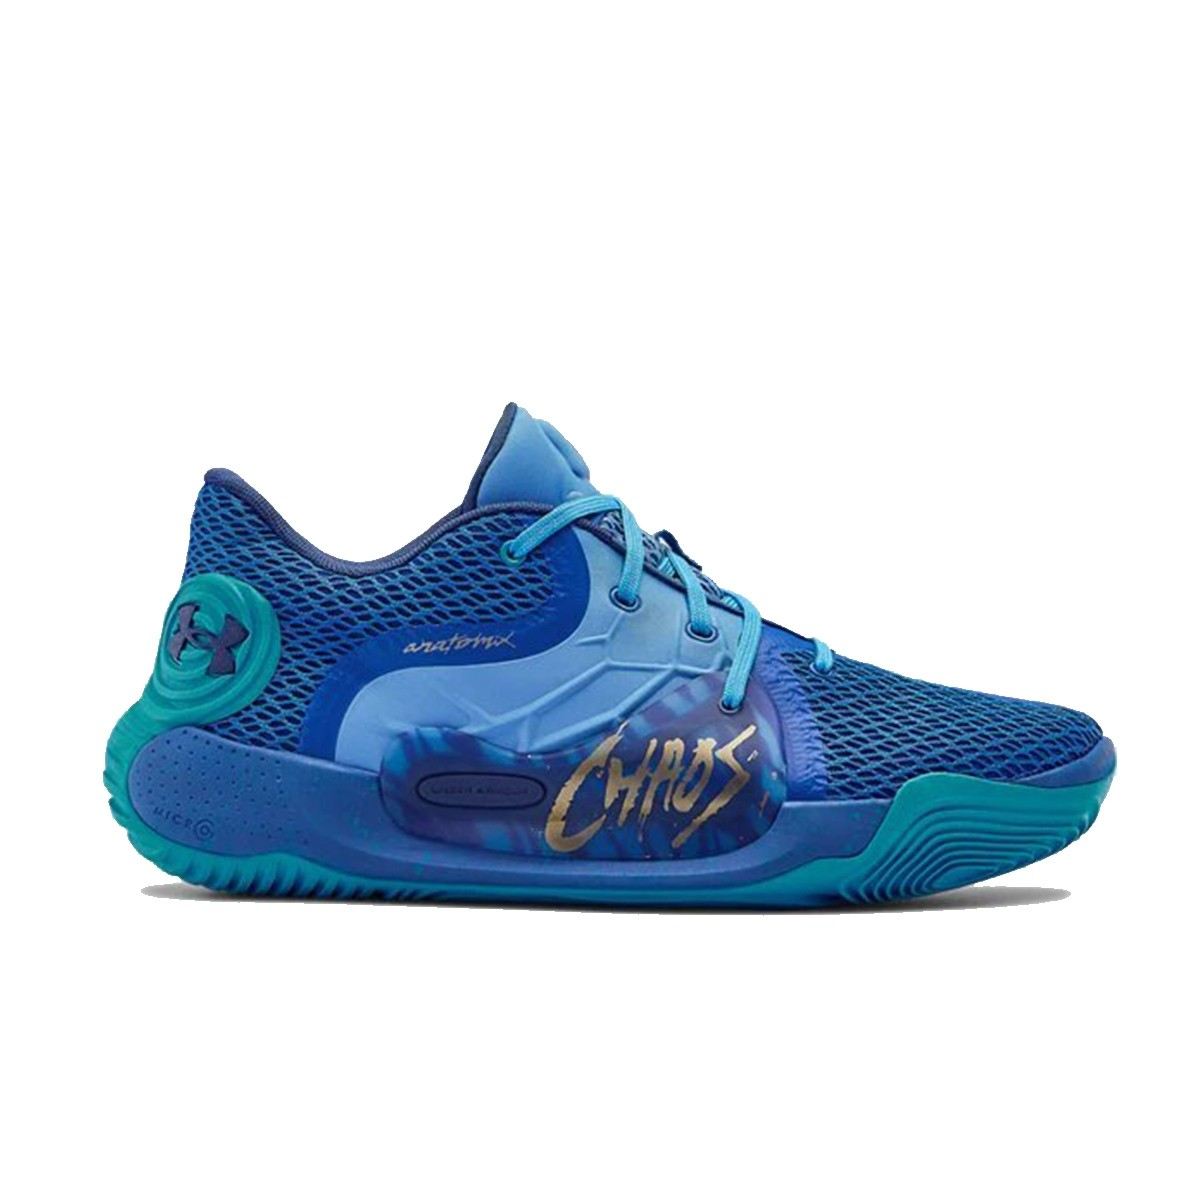 UA Spawn Low II Jr 'Chaos Water'